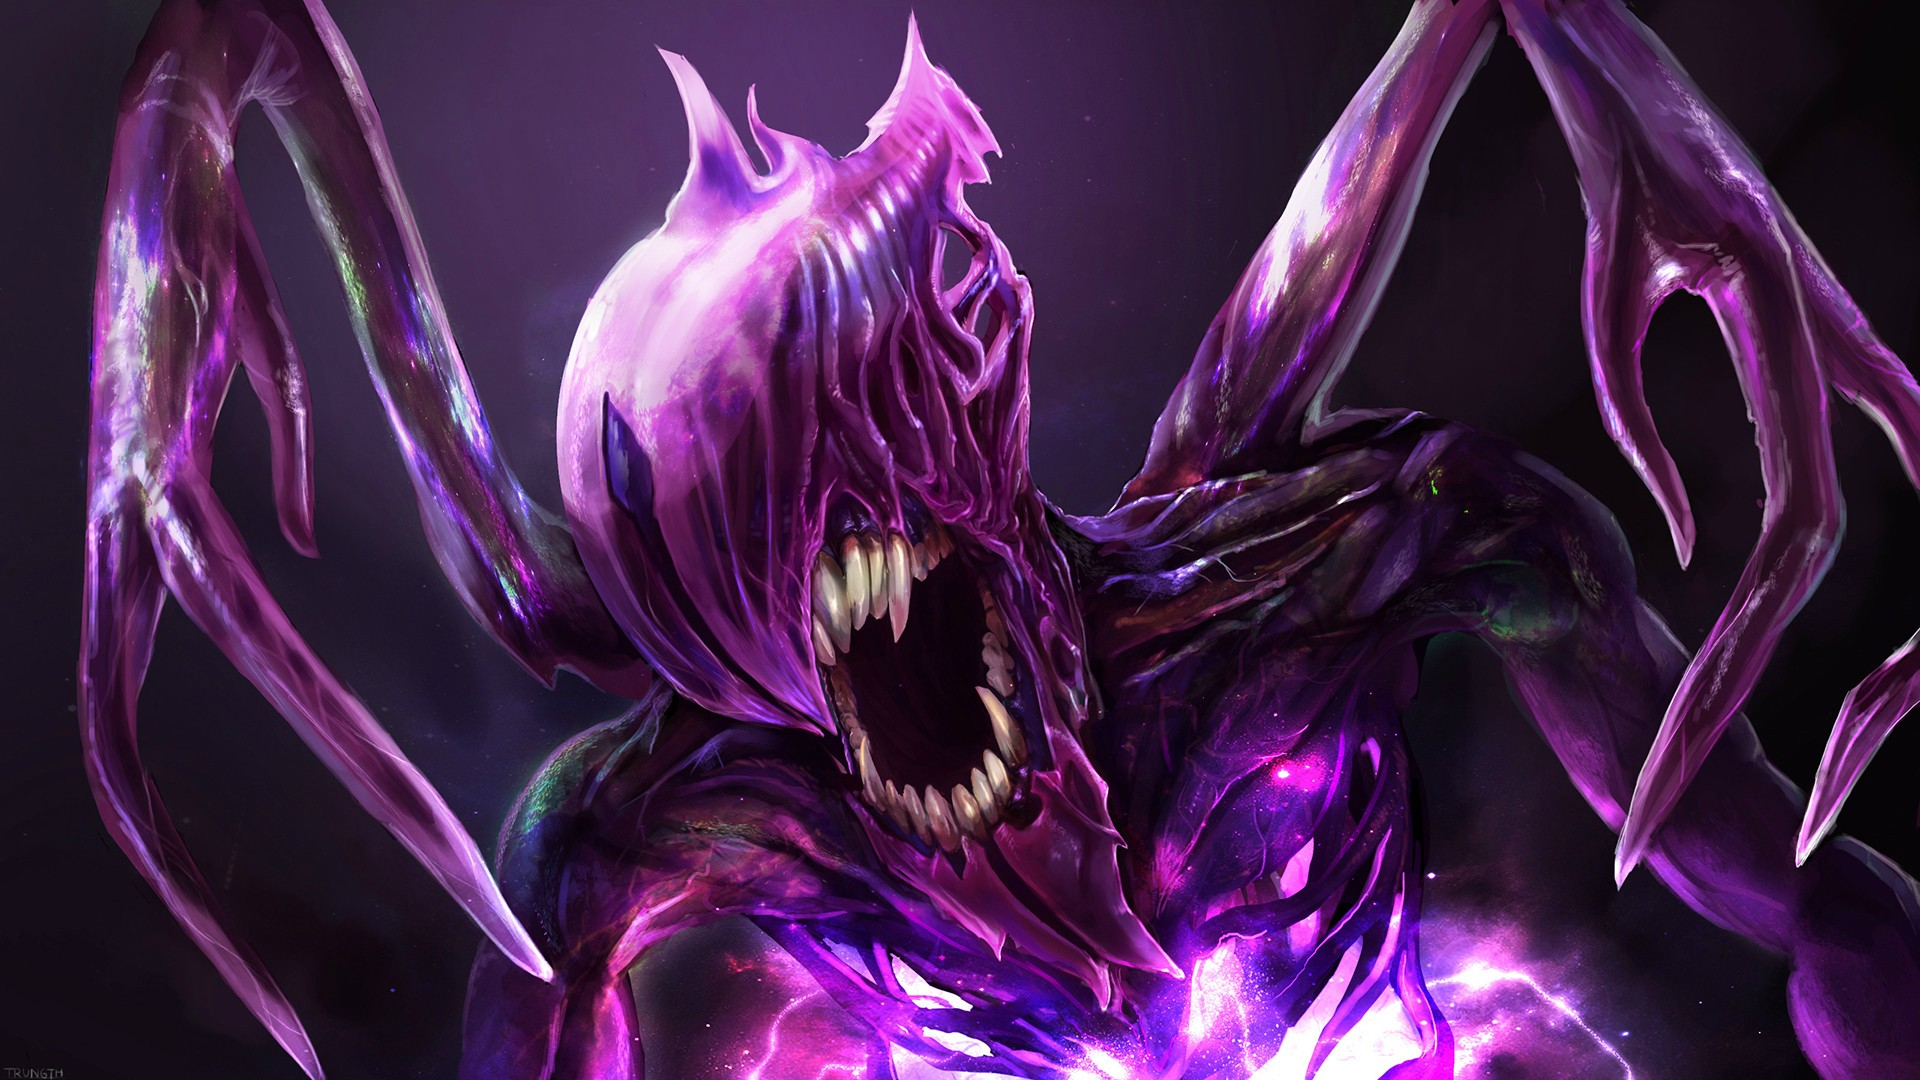 Bane free wallpapers for computer Dota 2